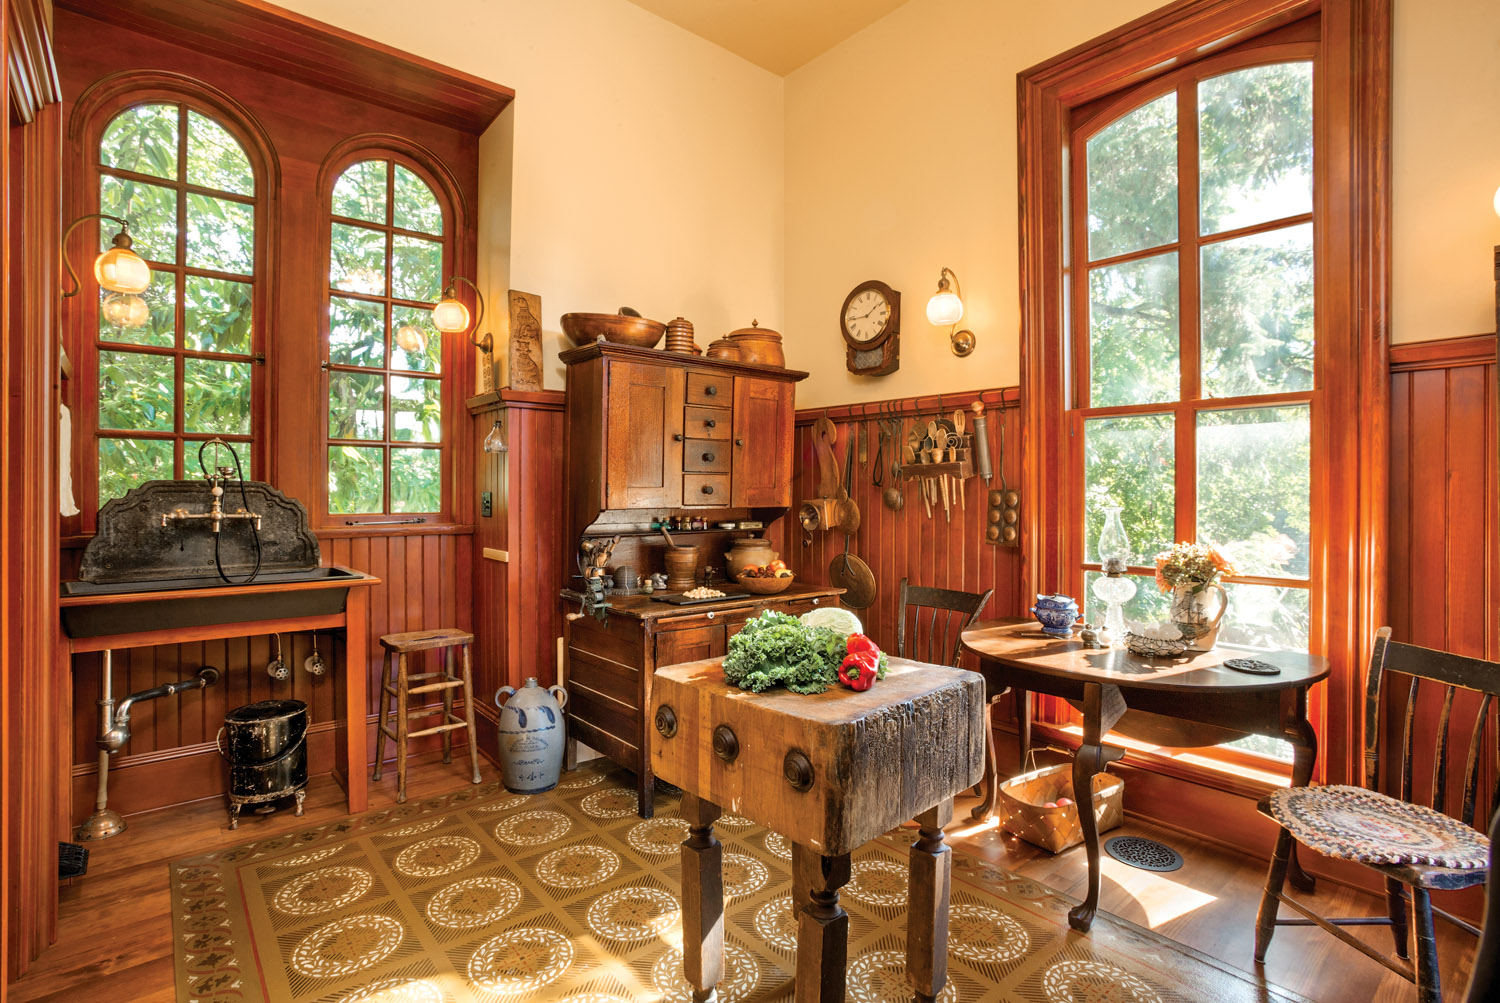 restored Victorian kitchen